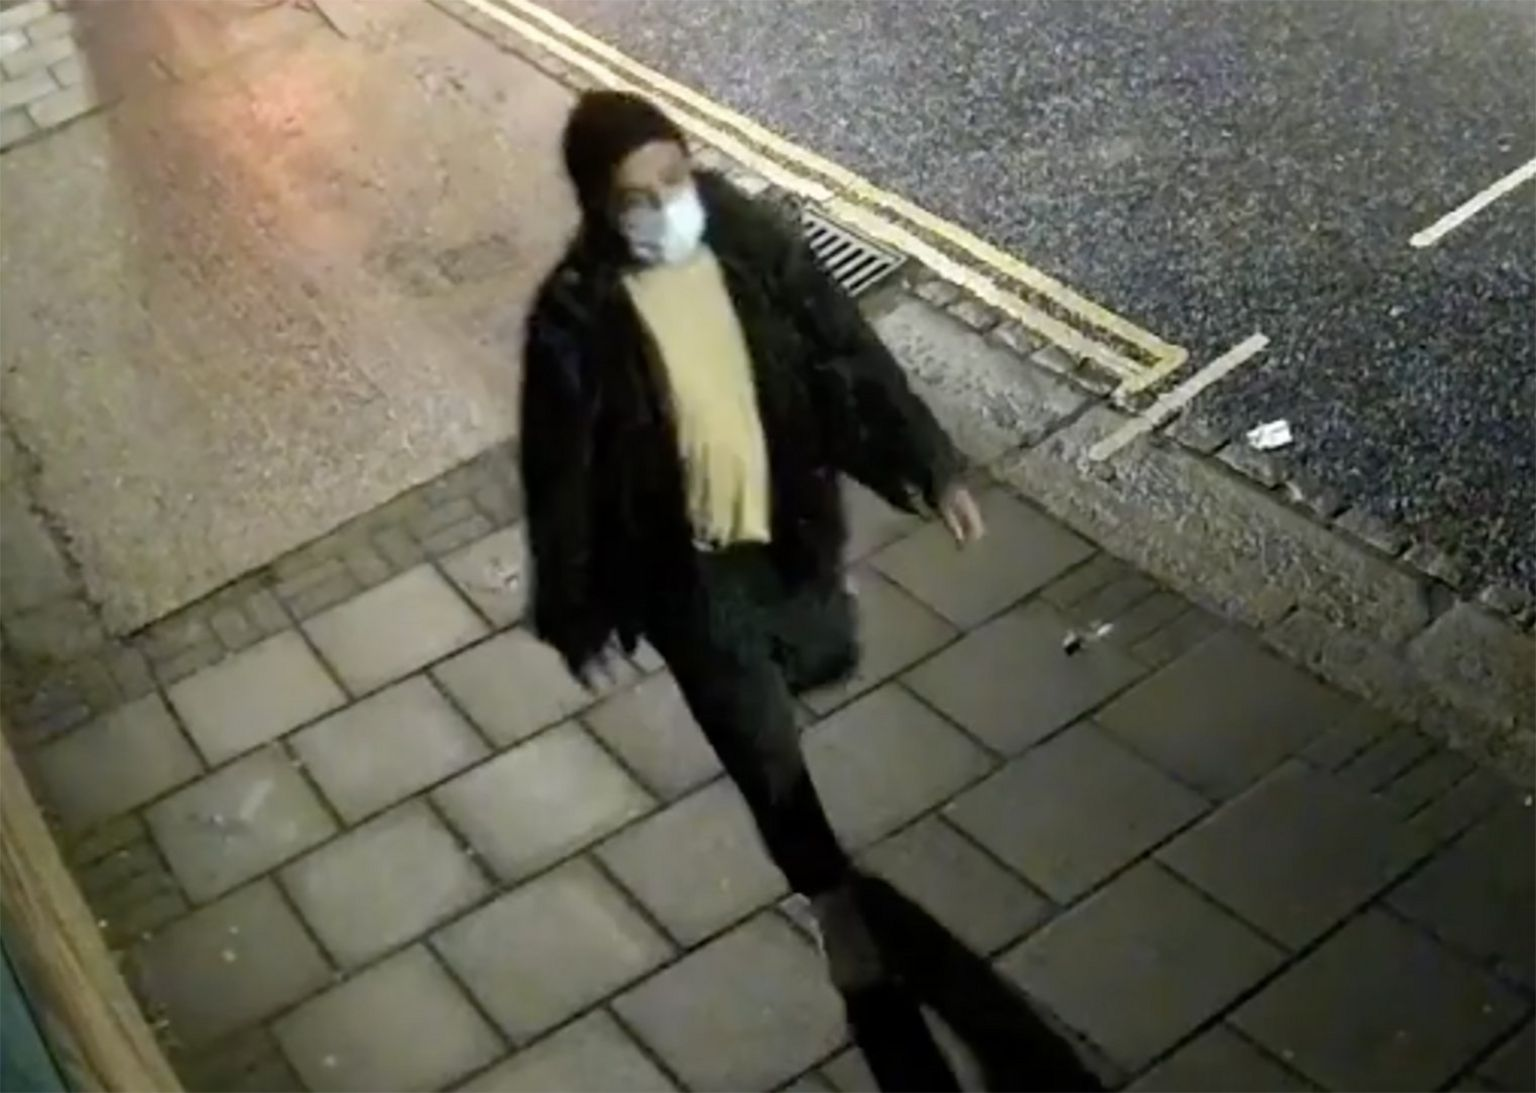 Suspect wanted by police